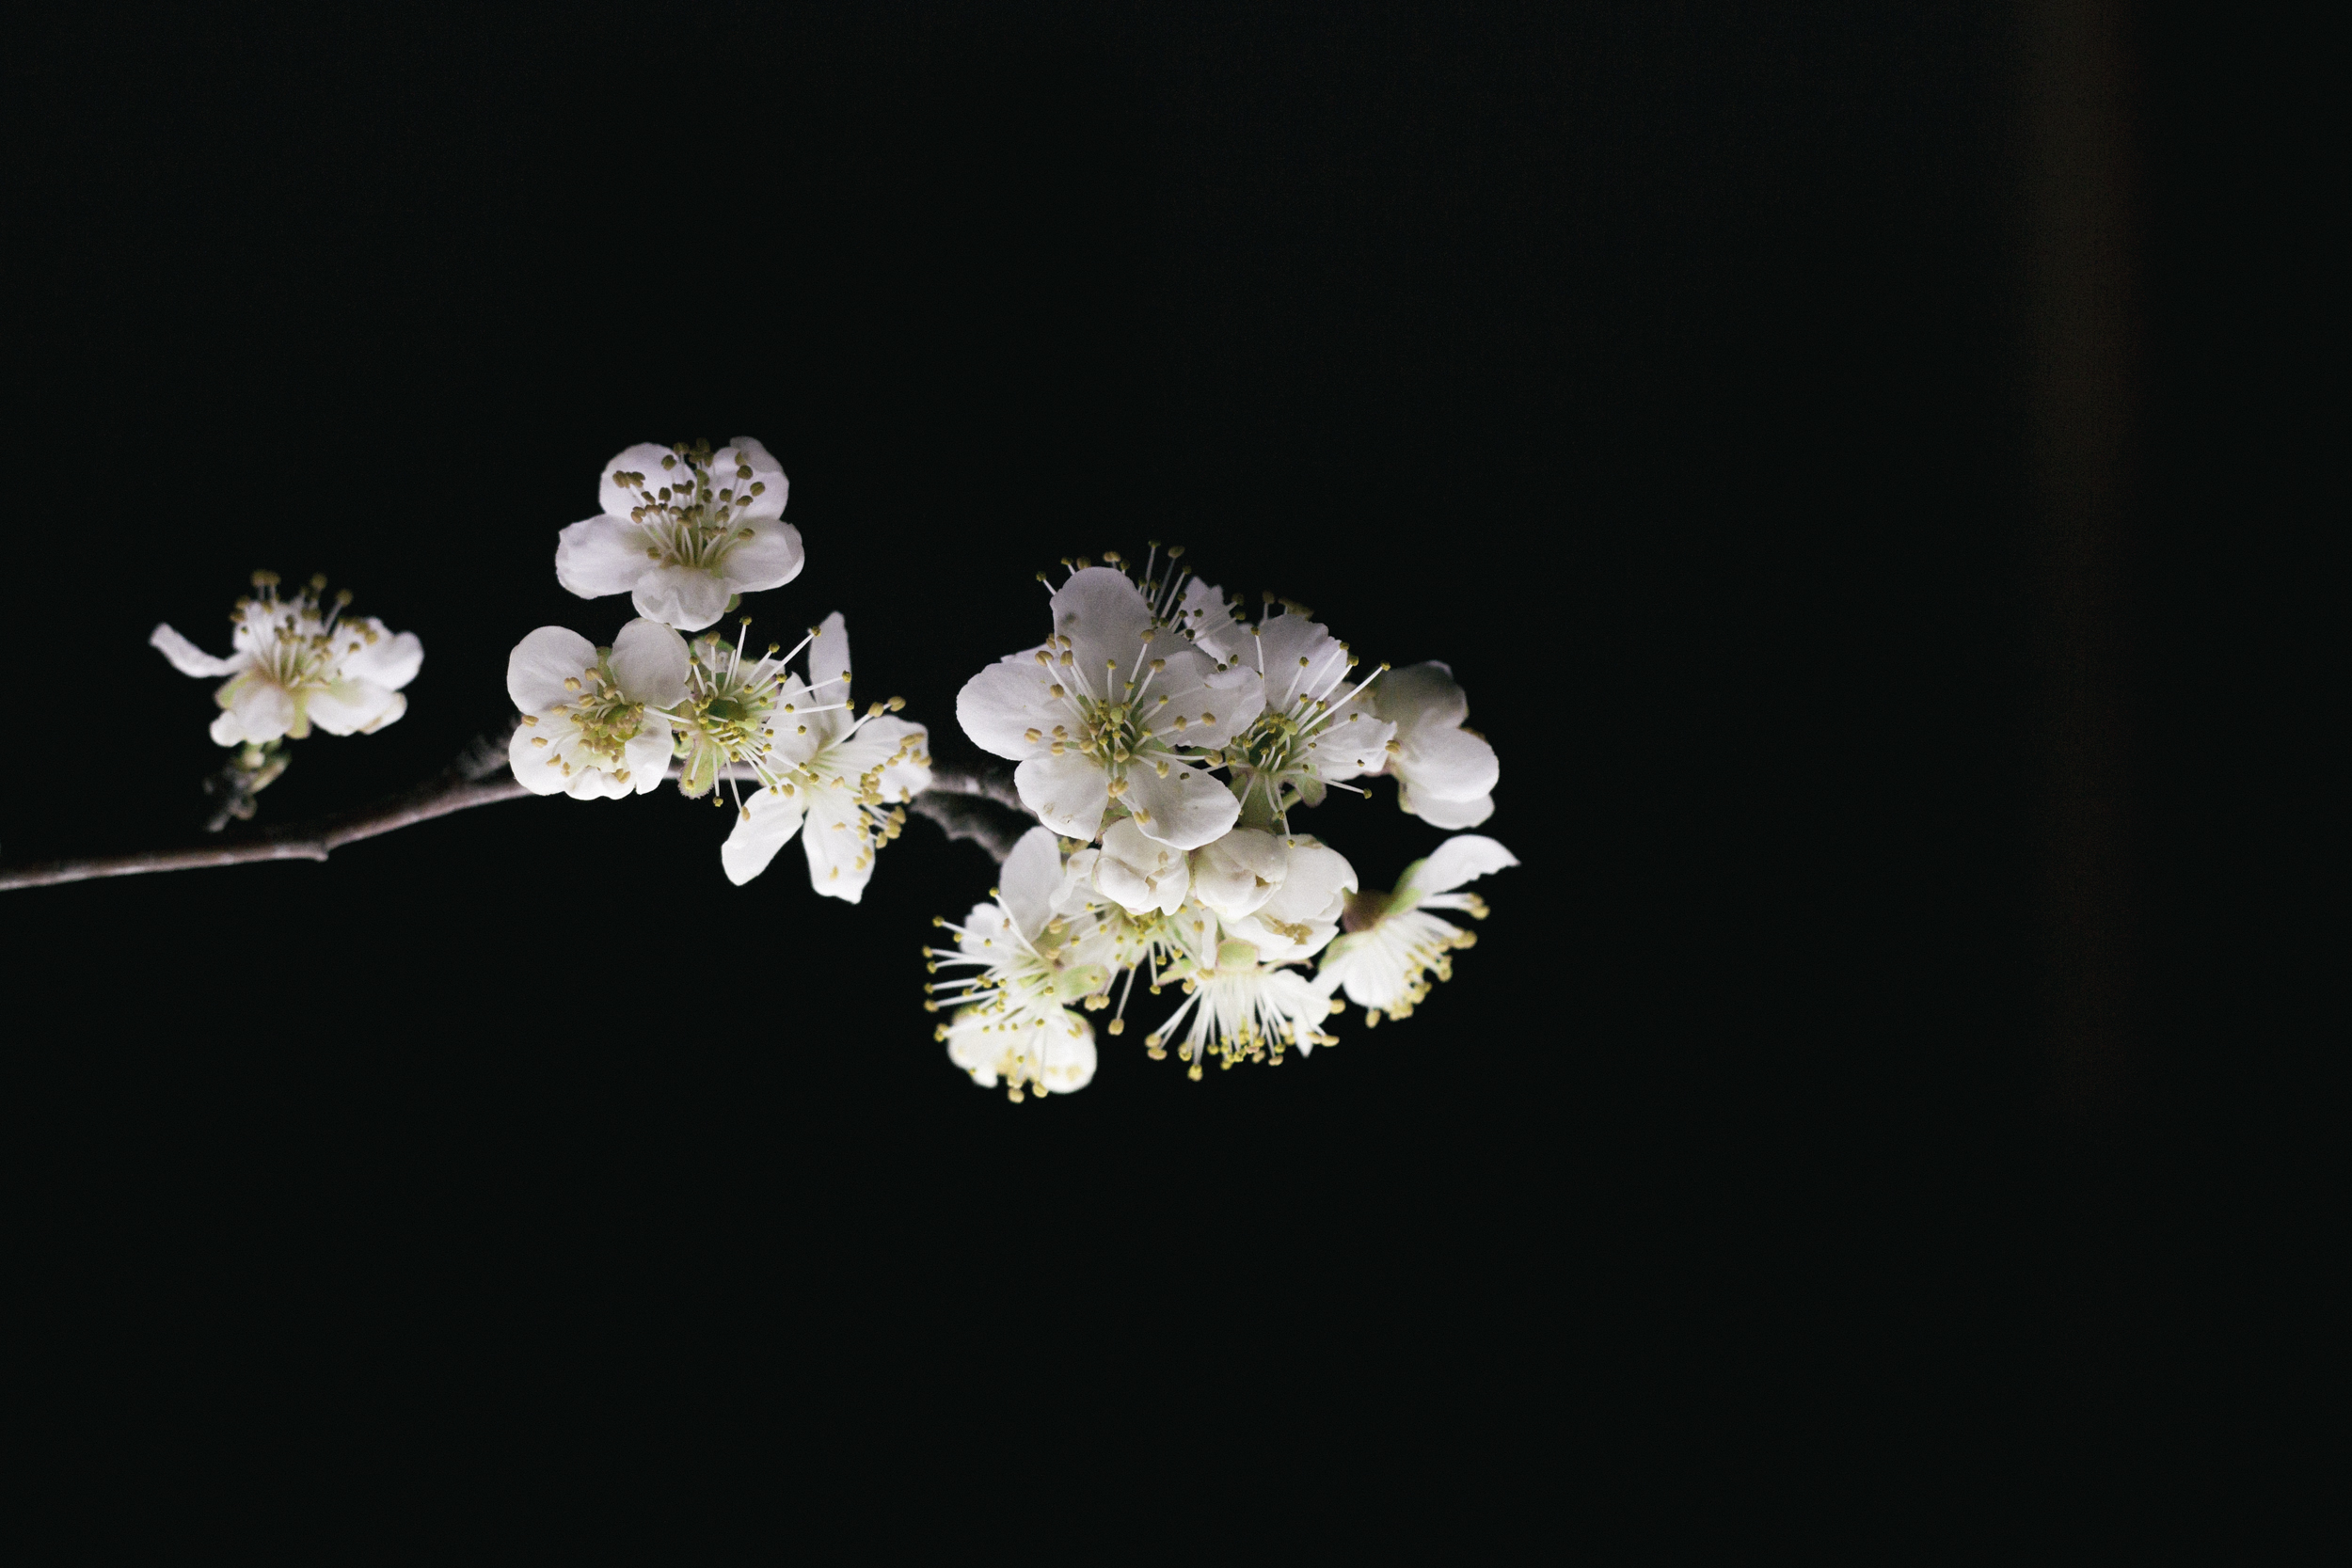 Janelle.grace.com - Floral photography with lightbox-1.jpg